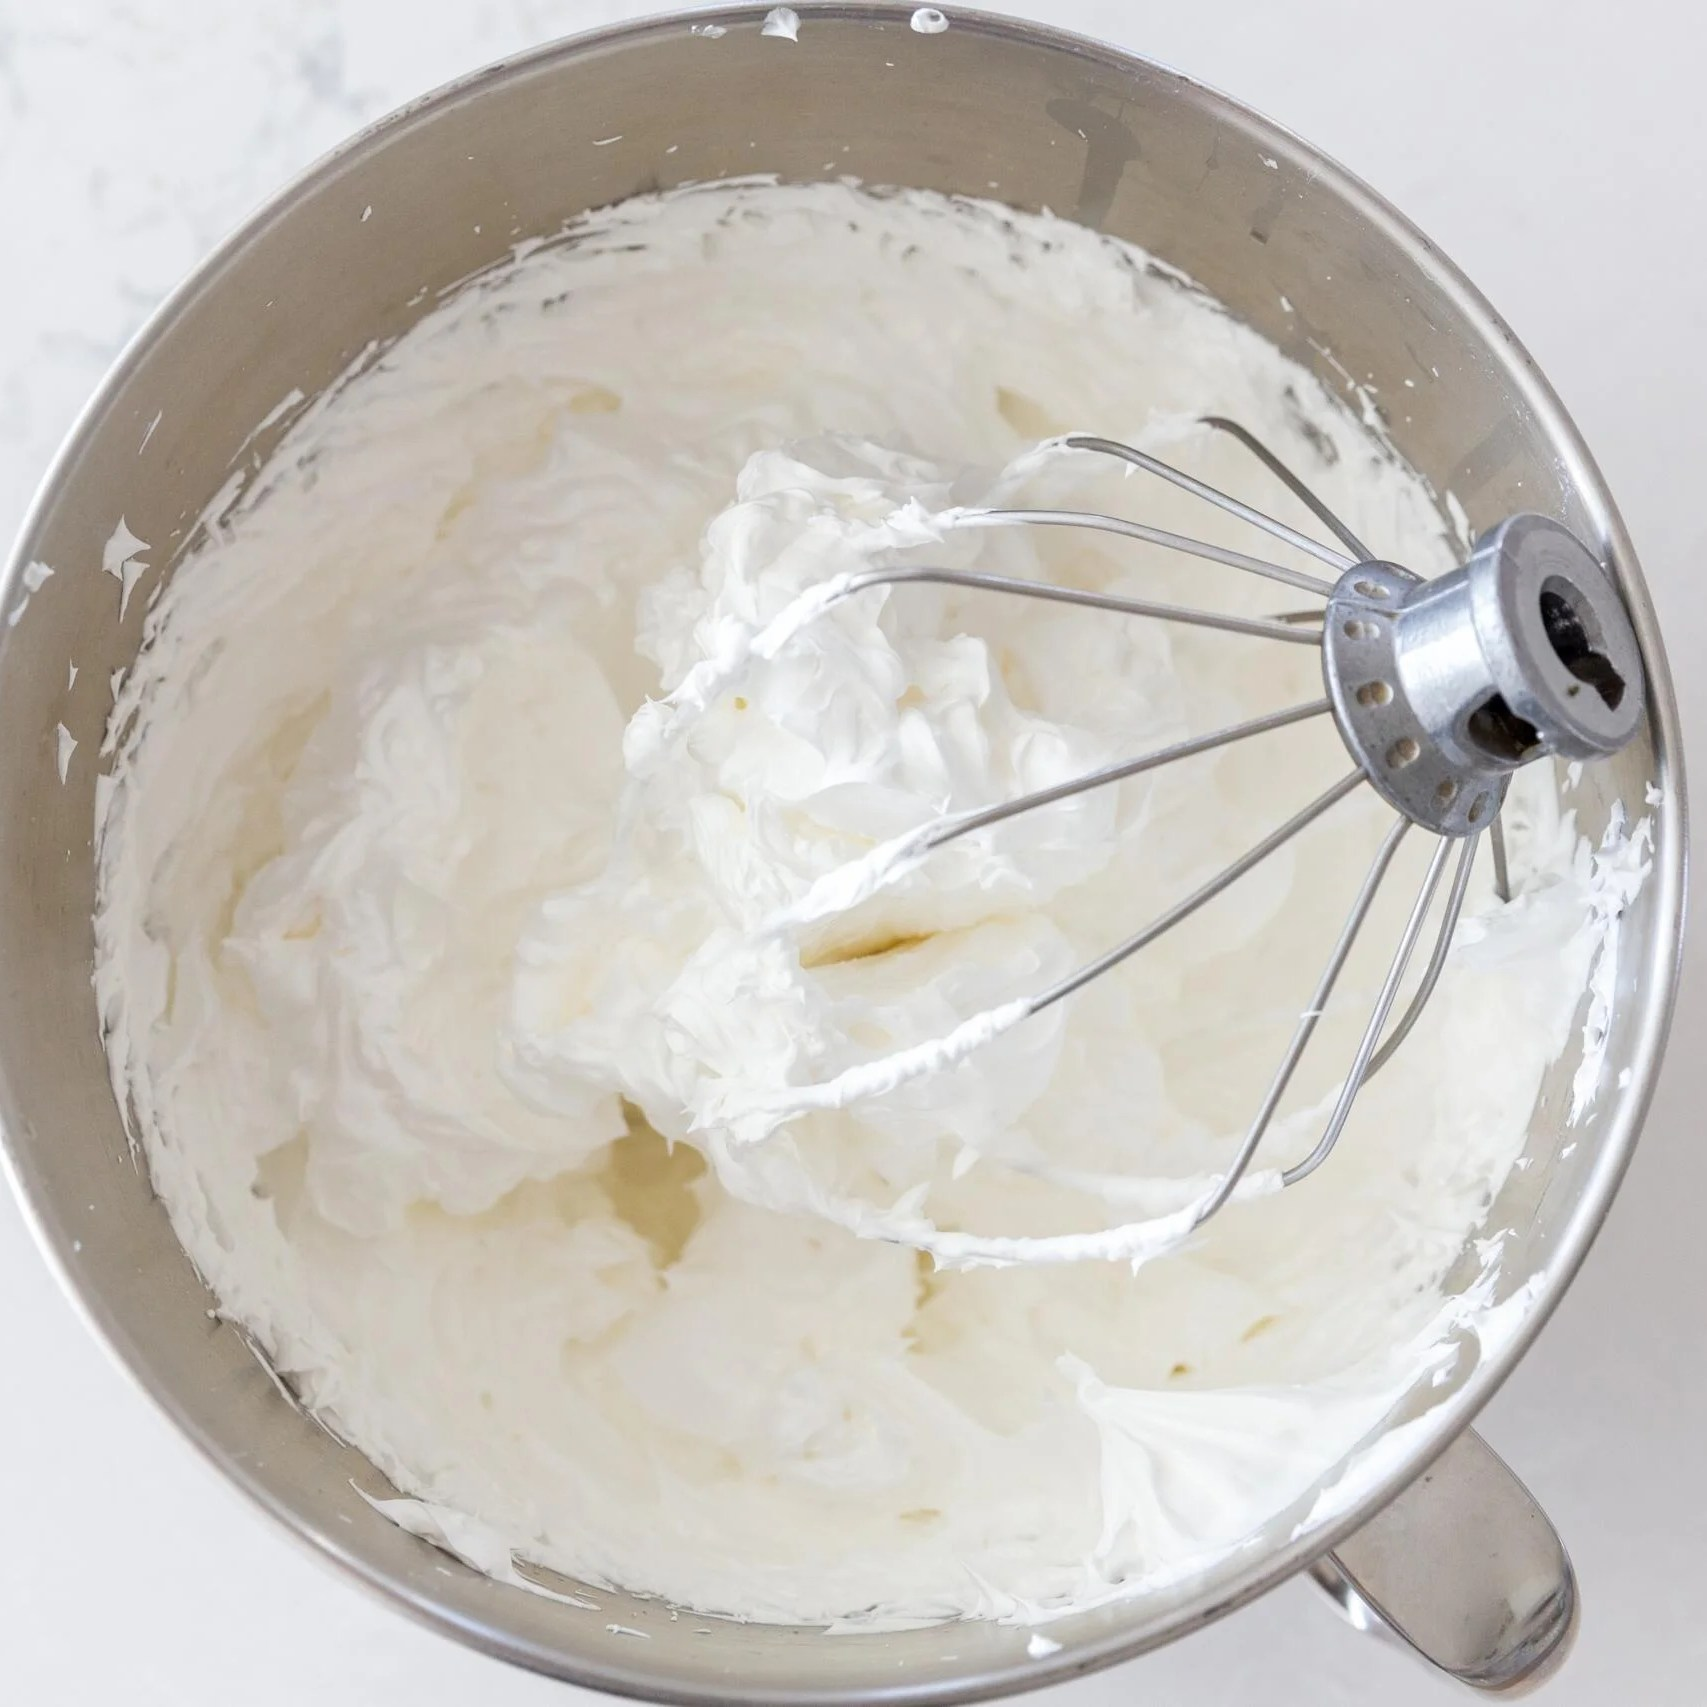 Whisked egg whites in a mixing bowl